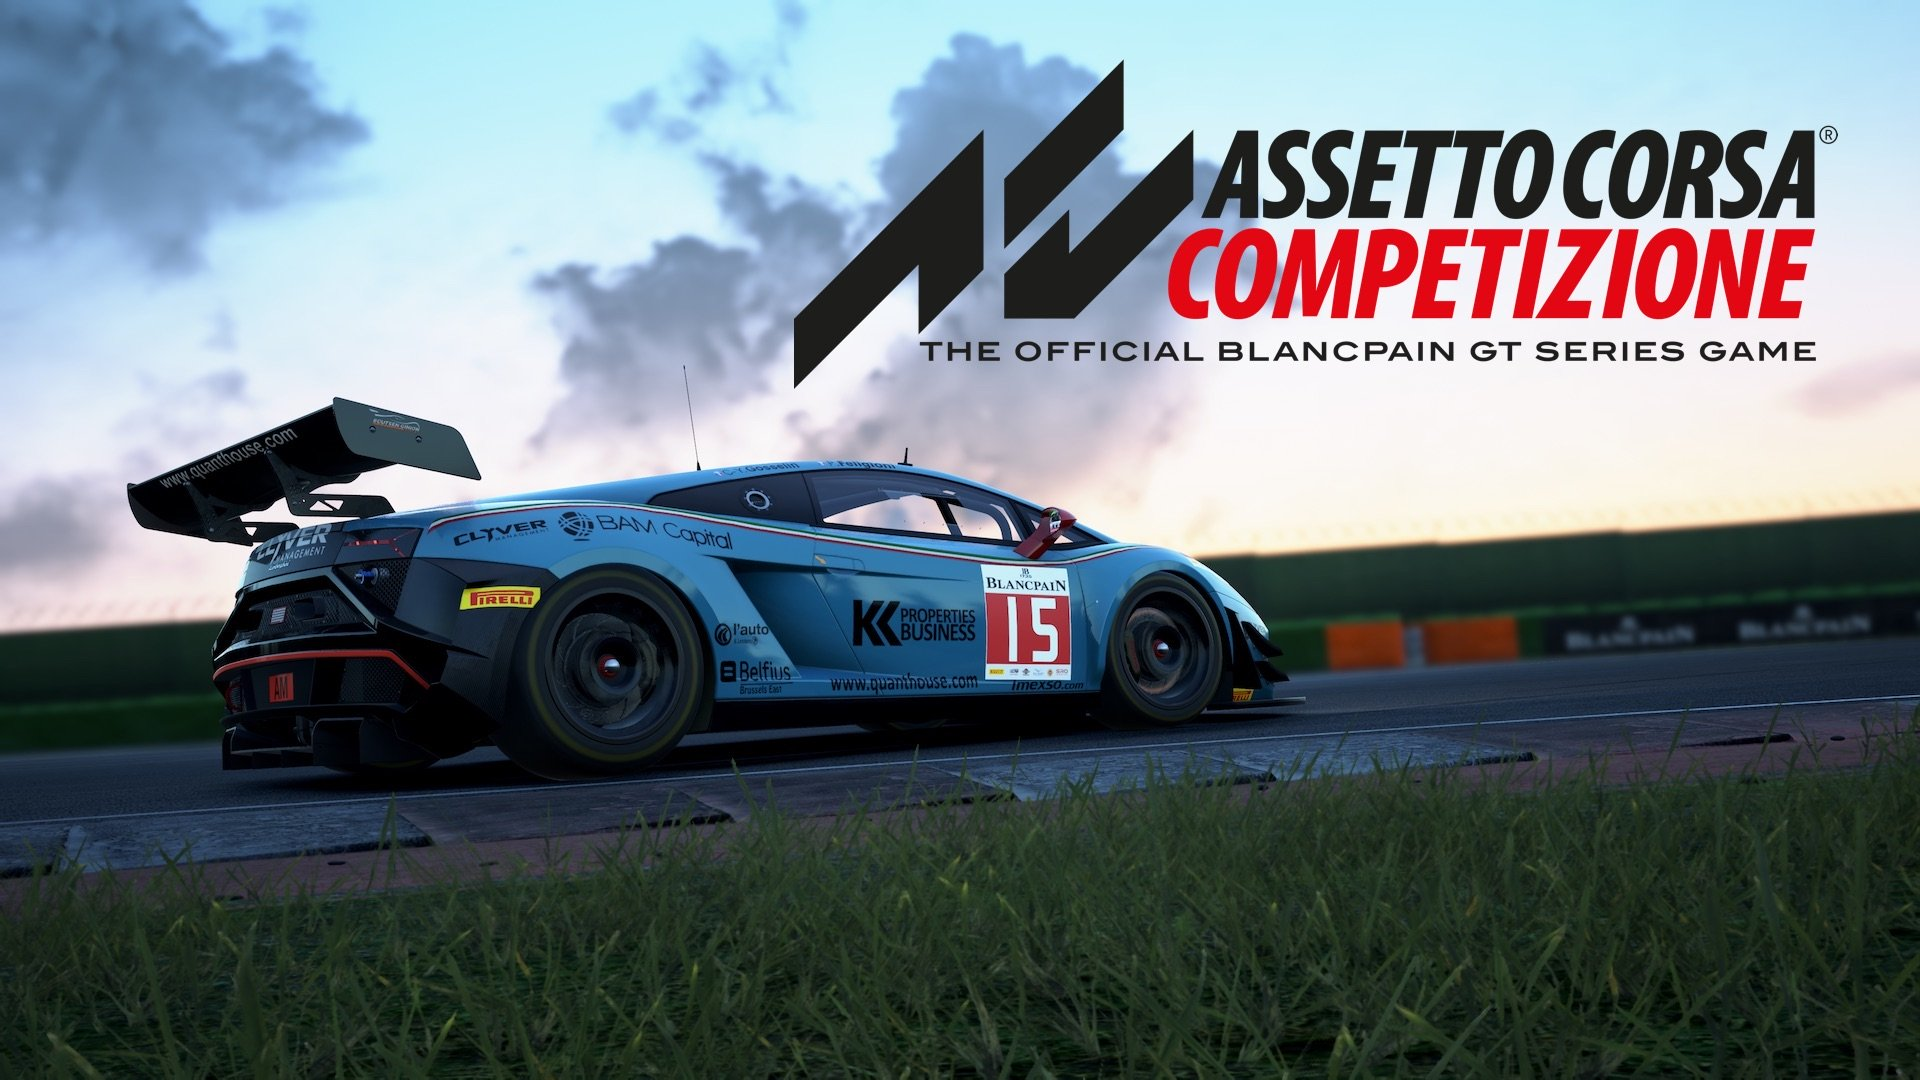 Assetto Corsa racing games